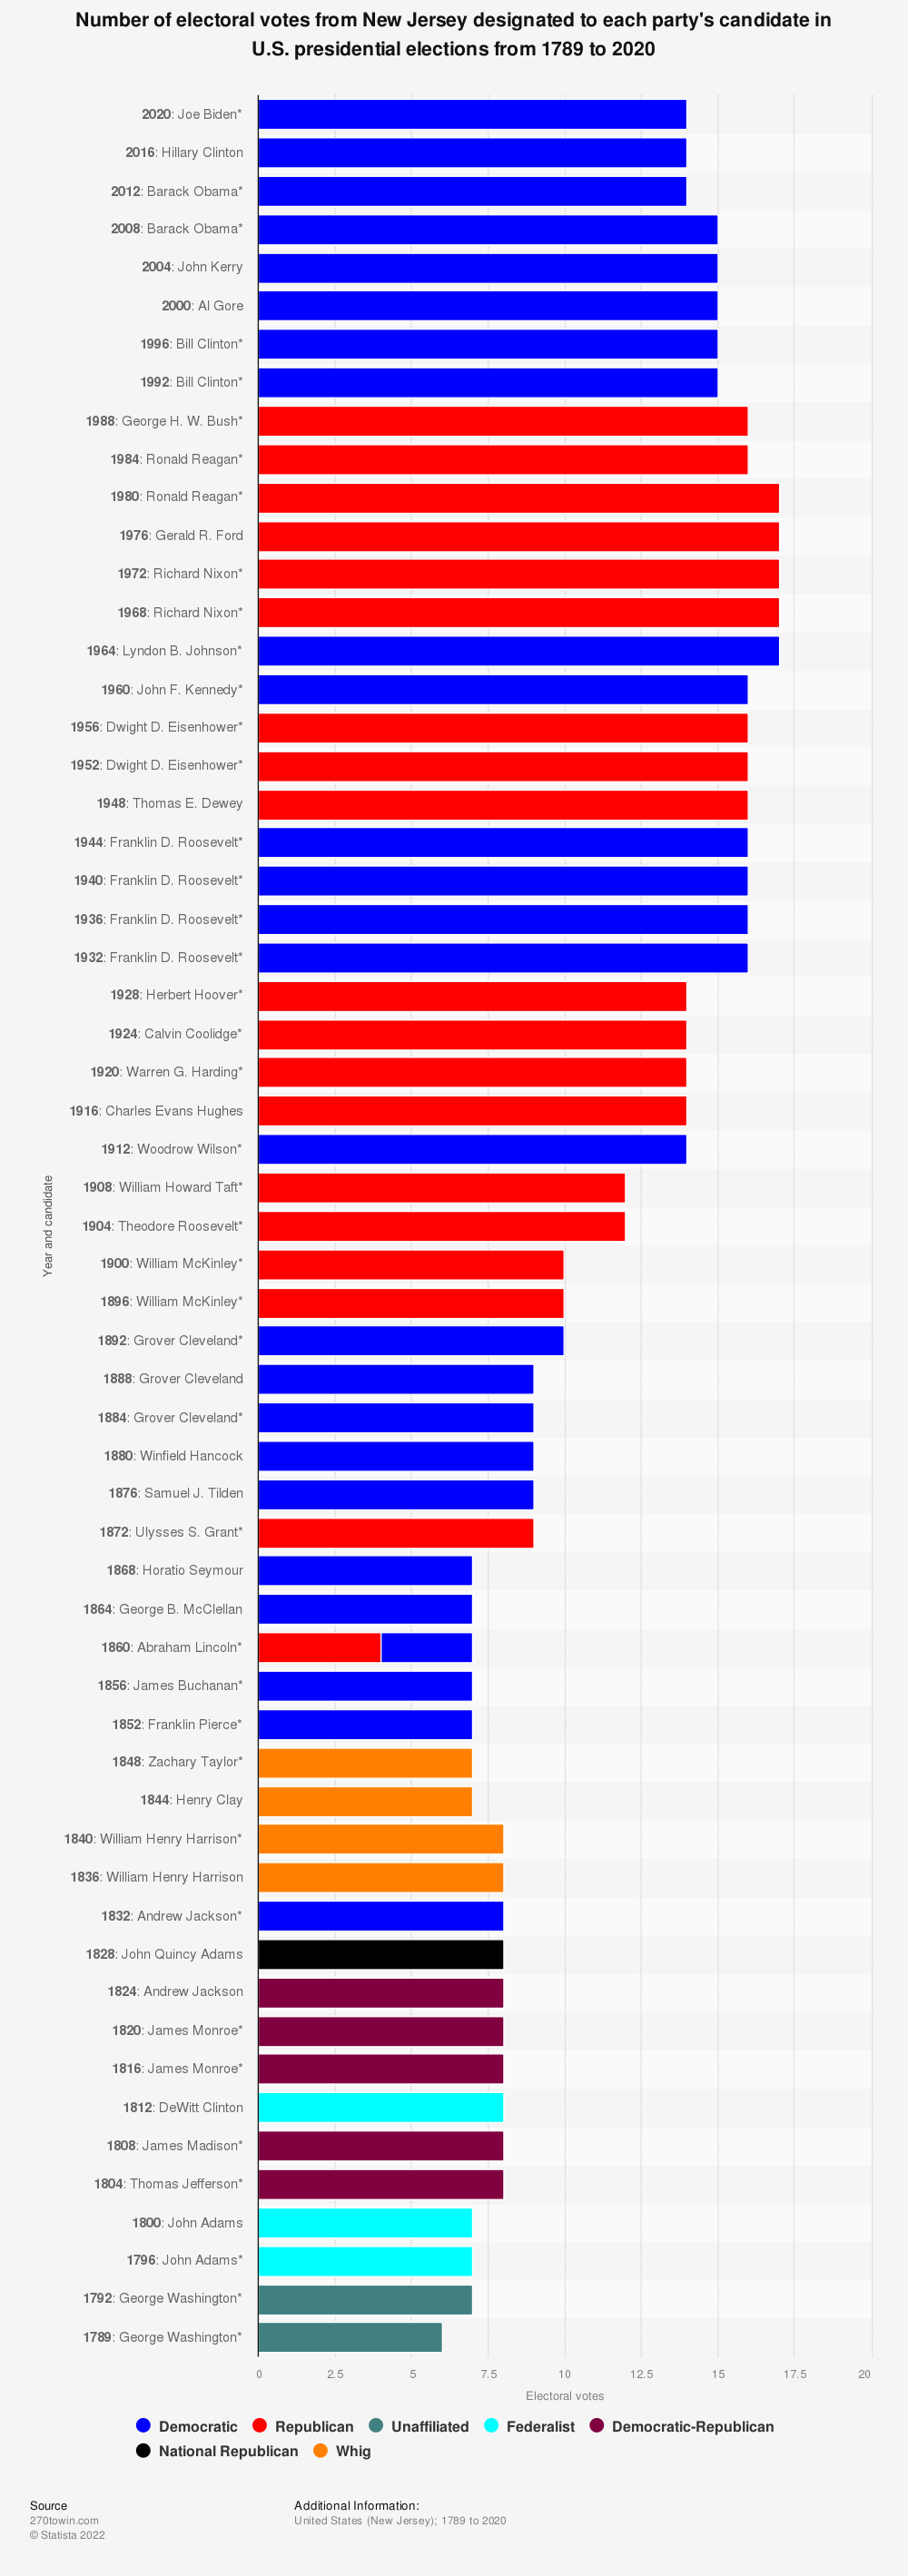 Statistic: Number of electoral votes from New Jersey designated to each party's candidate in U.S. presidential elections from 1789 to 2020 | Statista